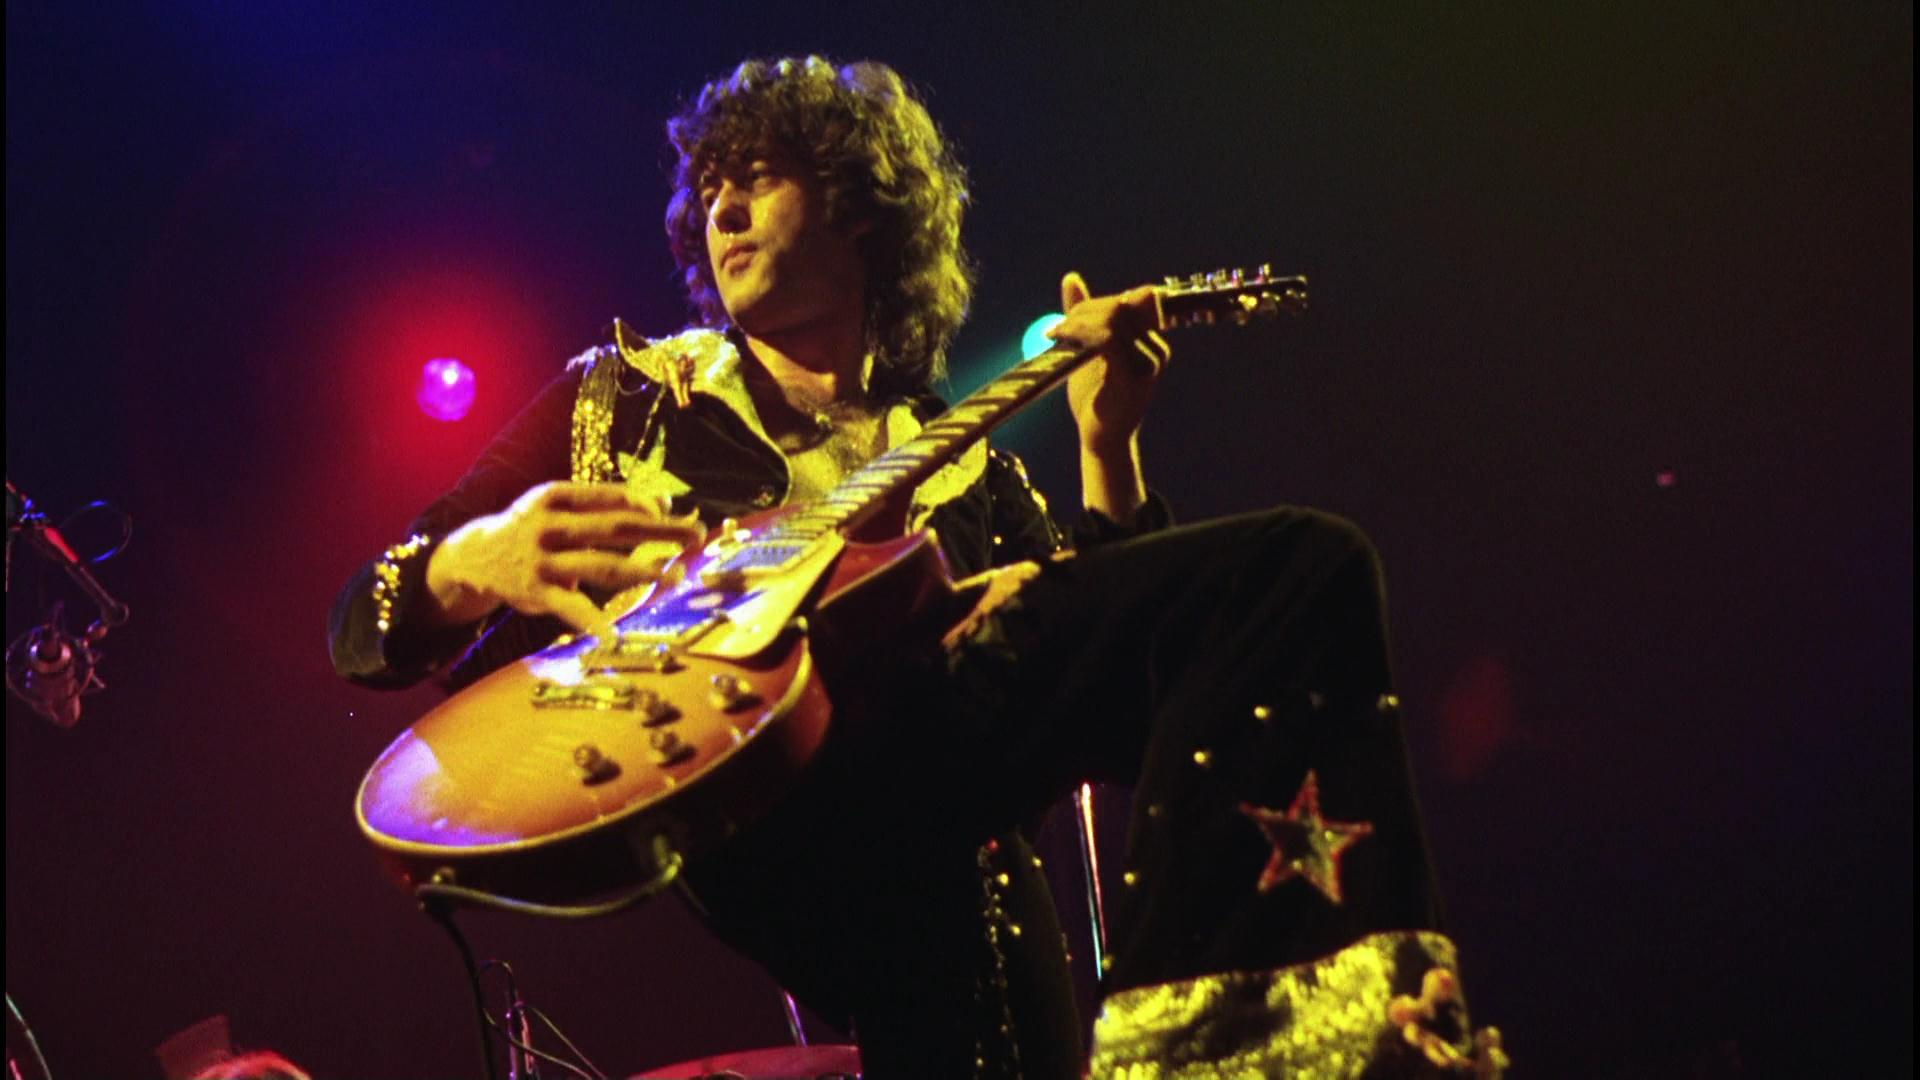 Jimmy Page Led Zeppelin live